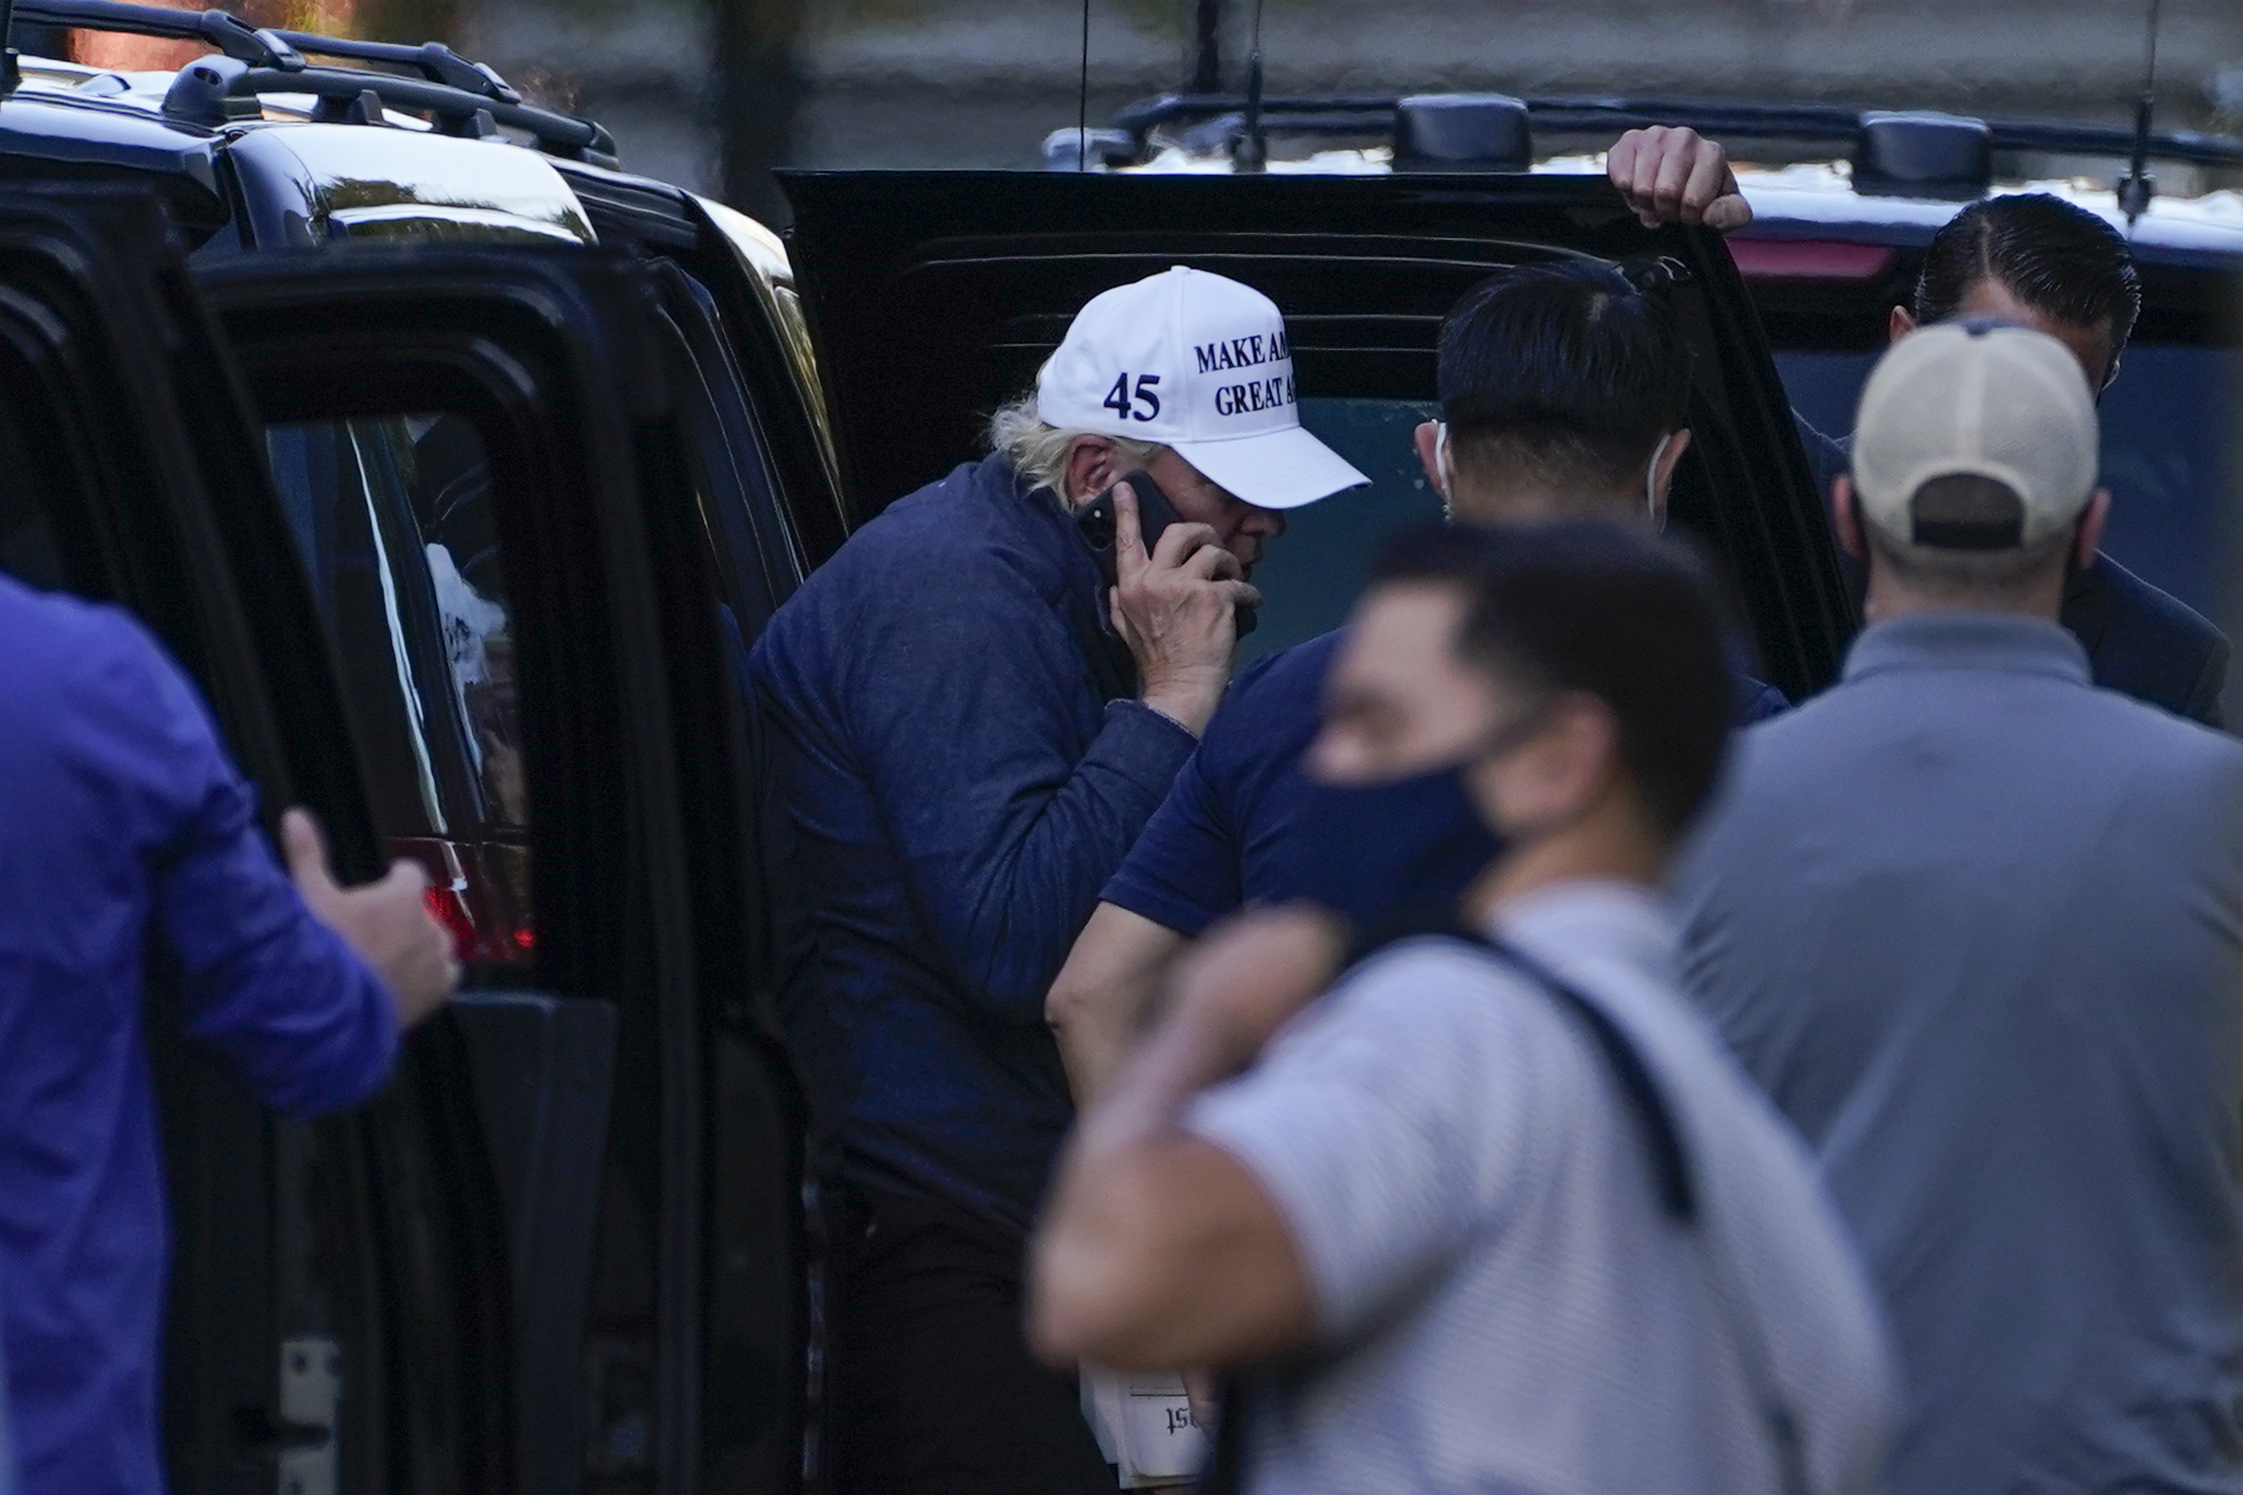 President Donald Trump talks on the phone as he arrives at the White House after golfing Saturday, Nov. 7, 2020, in Washington. (AP Photo/Evan Vucci)